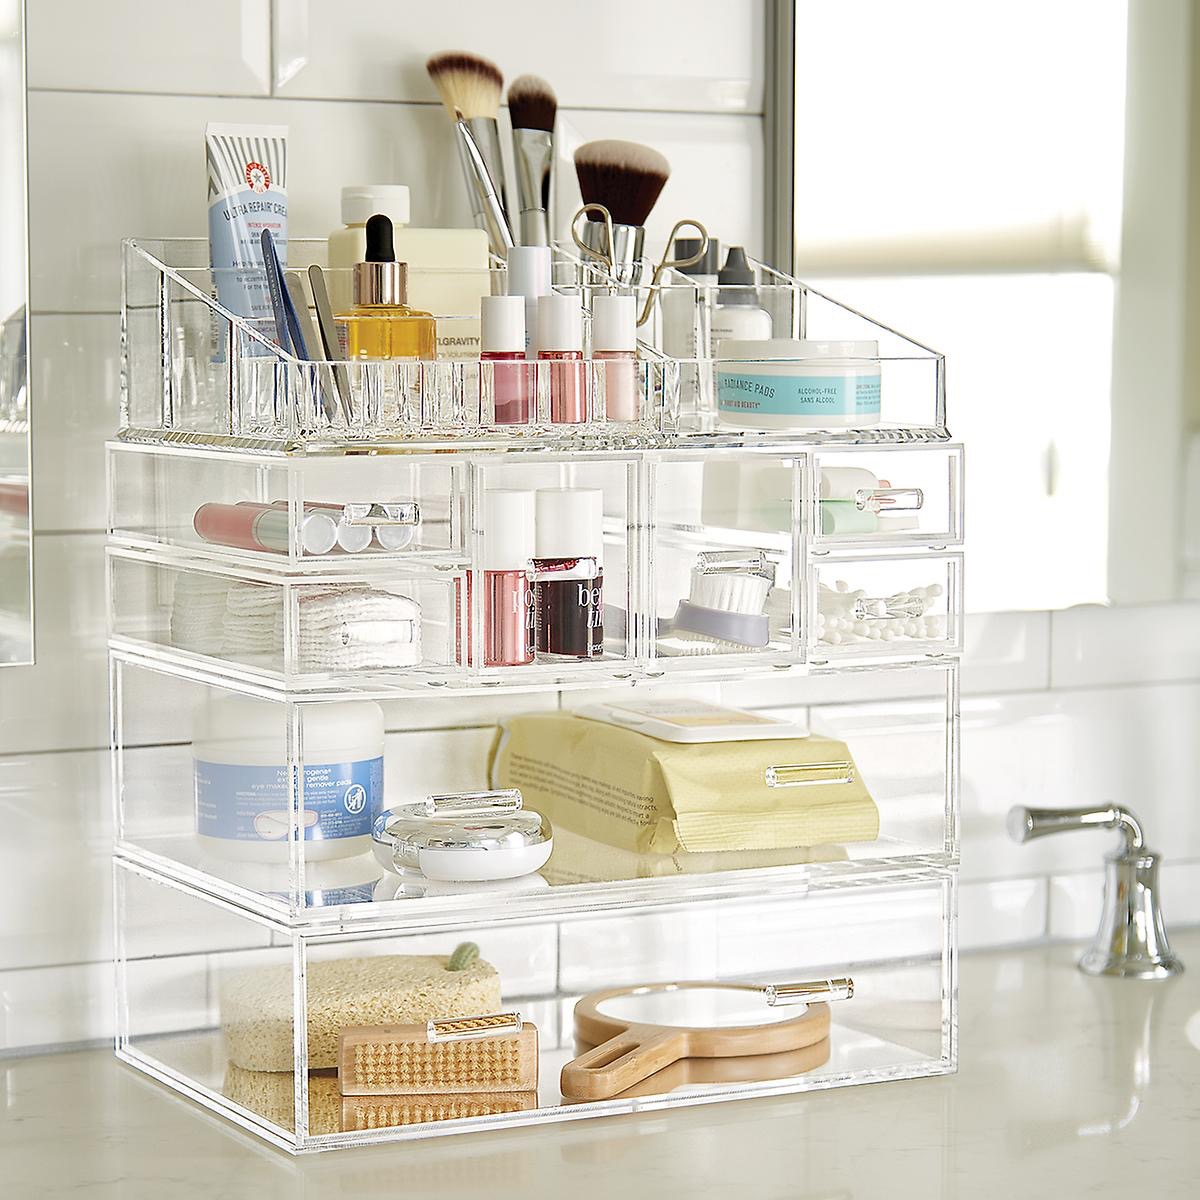 Clear acrylic case with makeup on counter